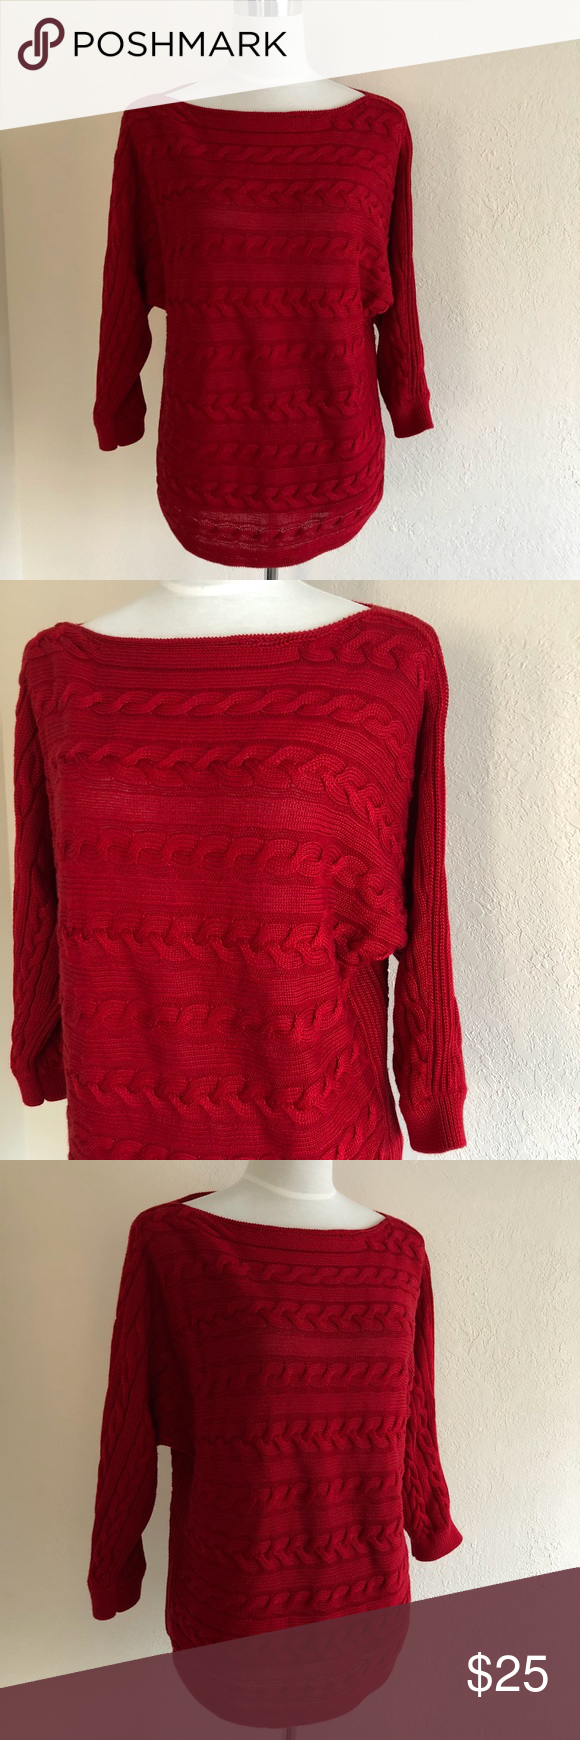 7a03cff0fd75 Ralph Lauren Cable knit Boatneck Sweater in 2018